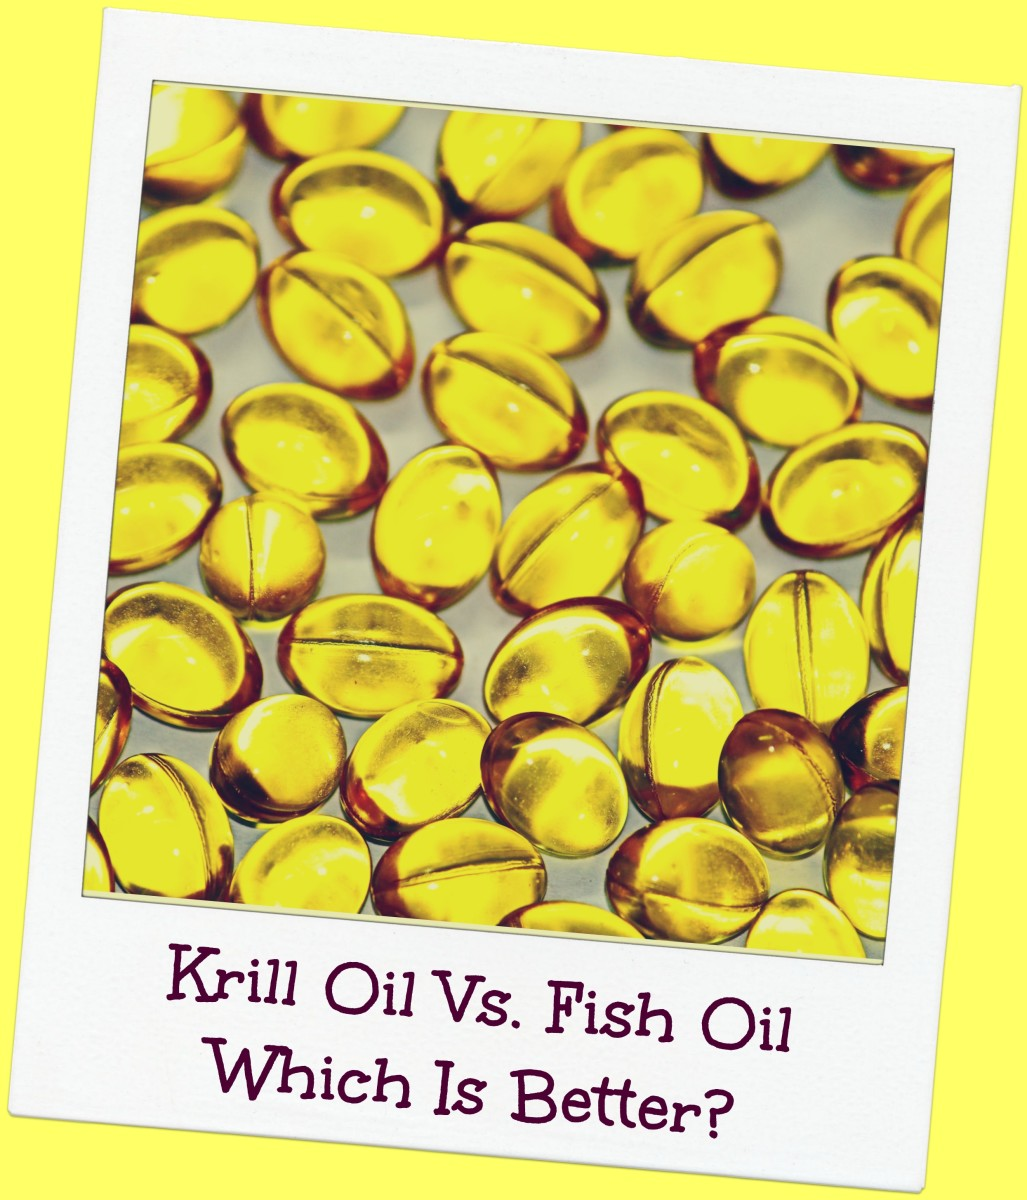 a-comparison-of-krill-oil-to-fish-oil-is-one-better-than-the-other